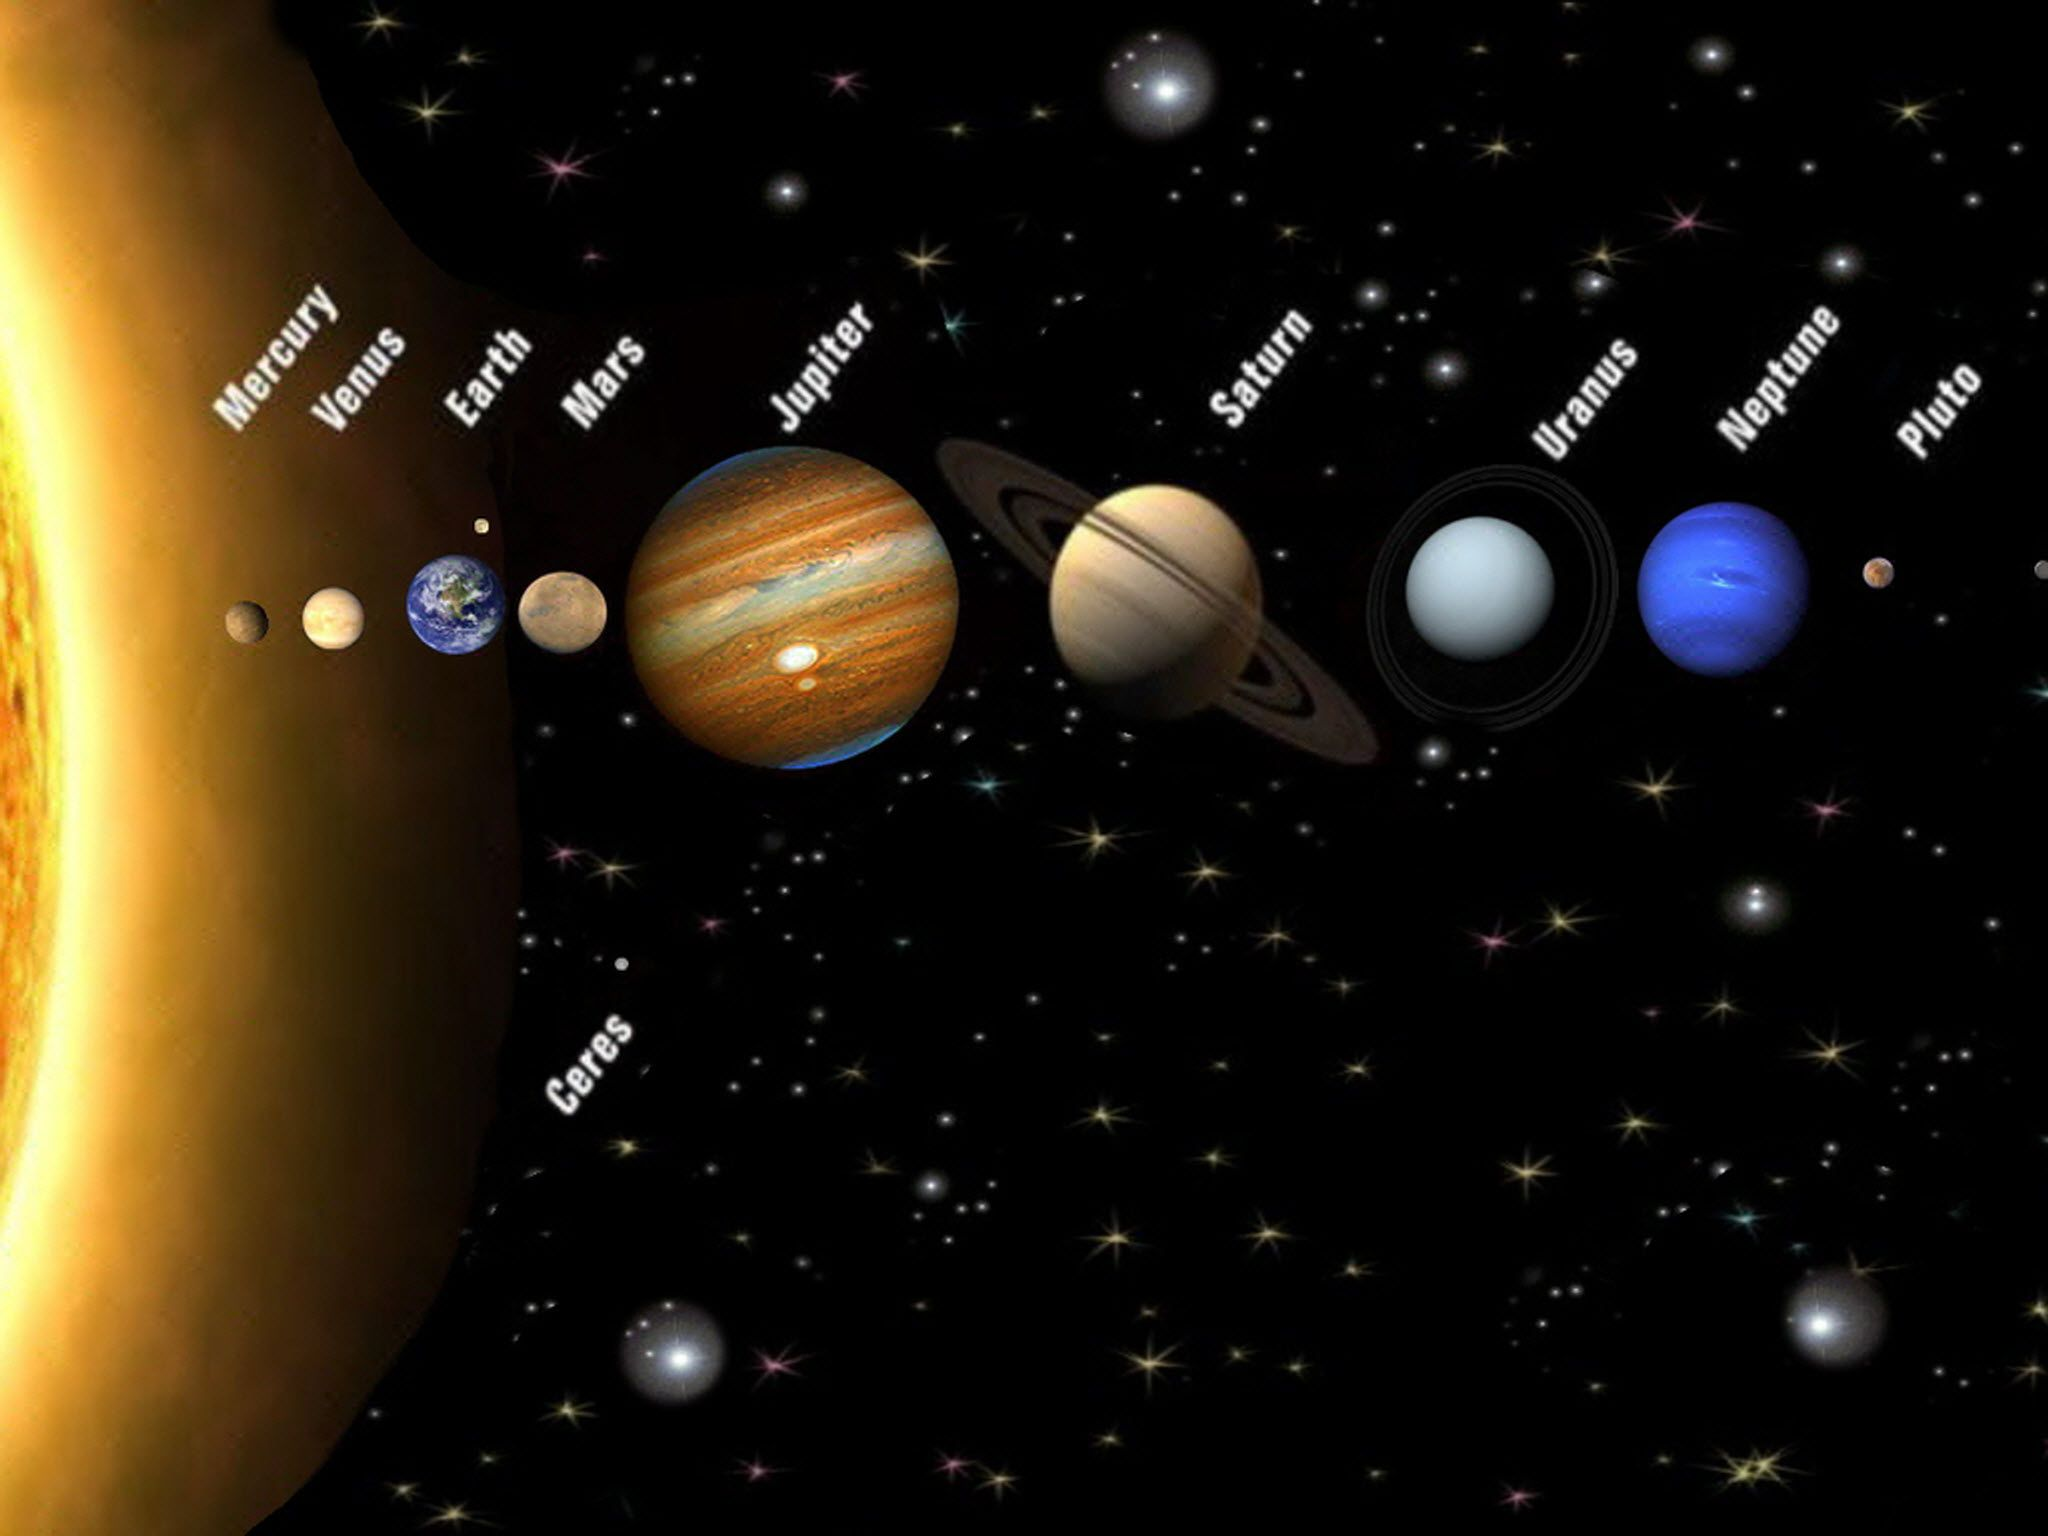 Solar System! A Kids Book About the Solar System - Fun Pictures of our solar system in order